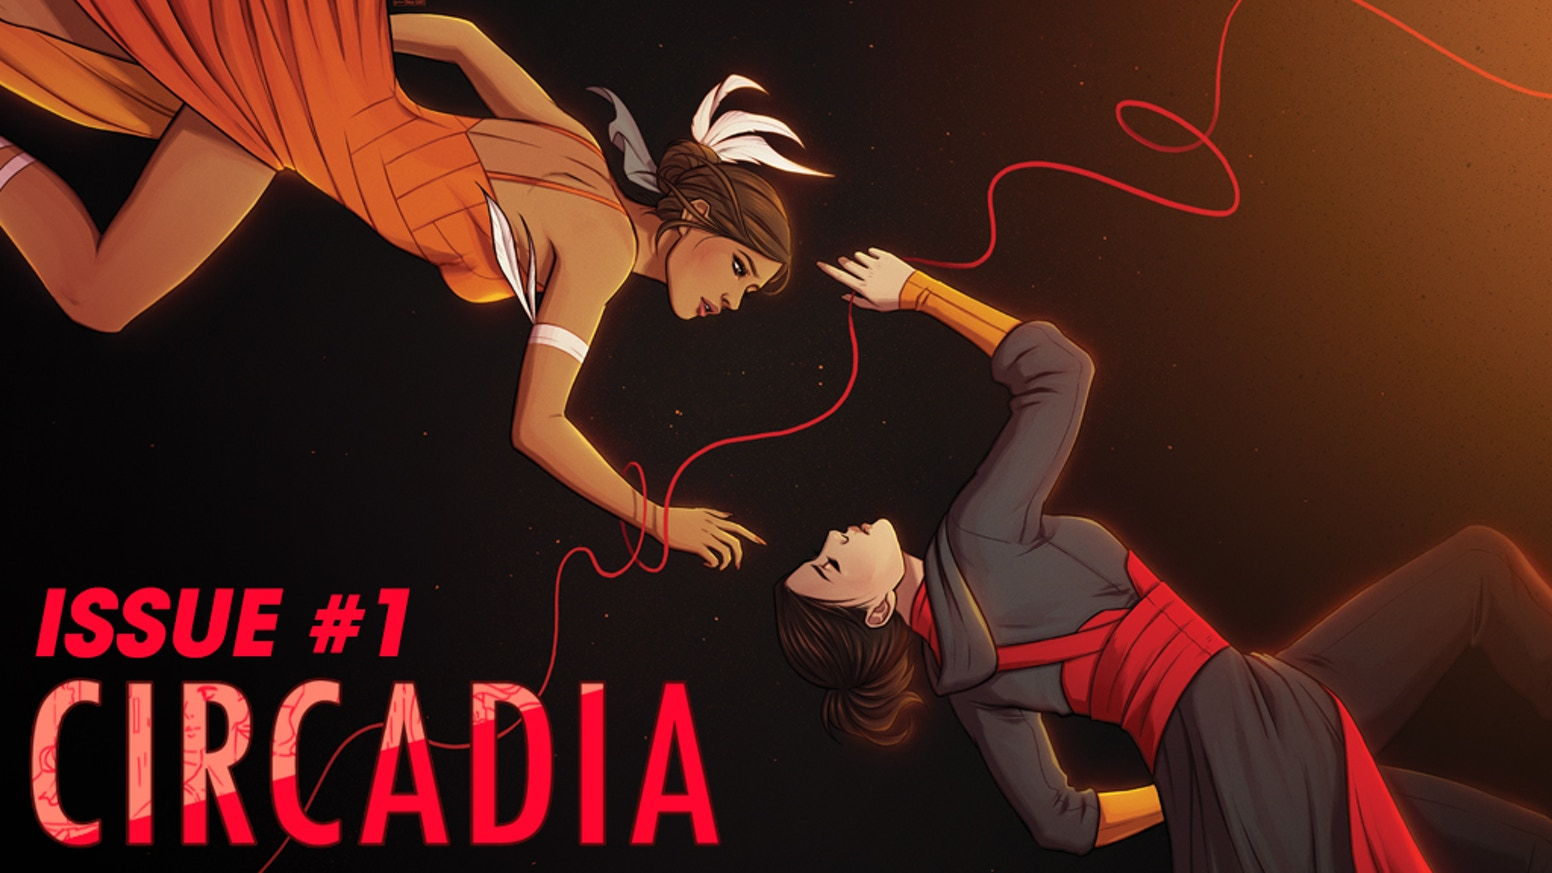 The first issue of a fantasy comic about a bisexual ballerina and a non-binary assassin falling in love while trying to save the world.